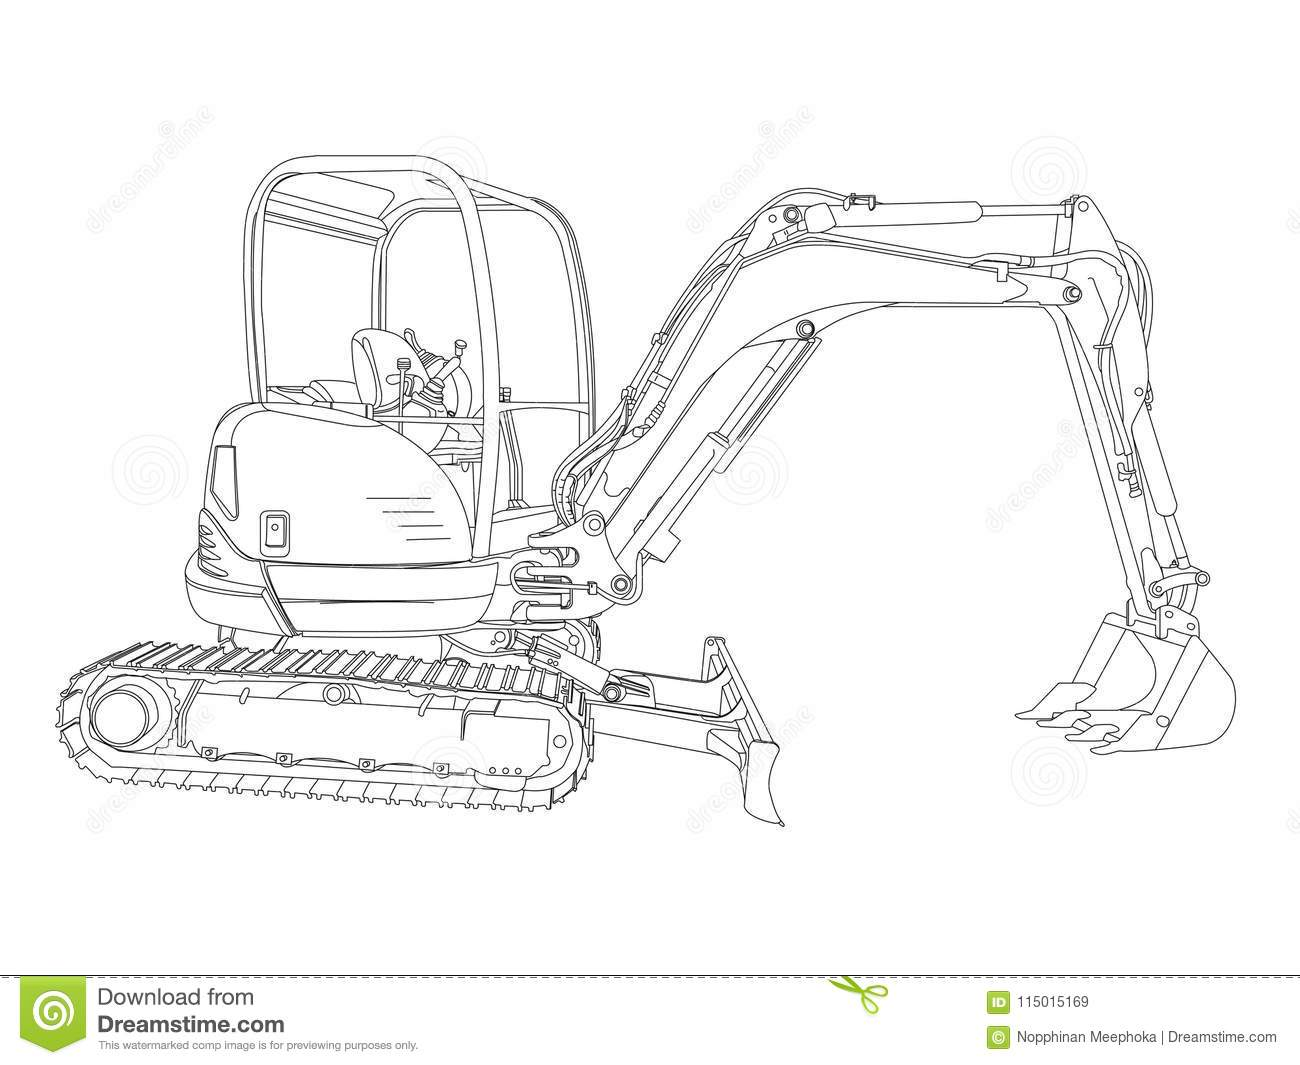 The Sketch Of A Hydraulic Cylinder Cartoon Vector